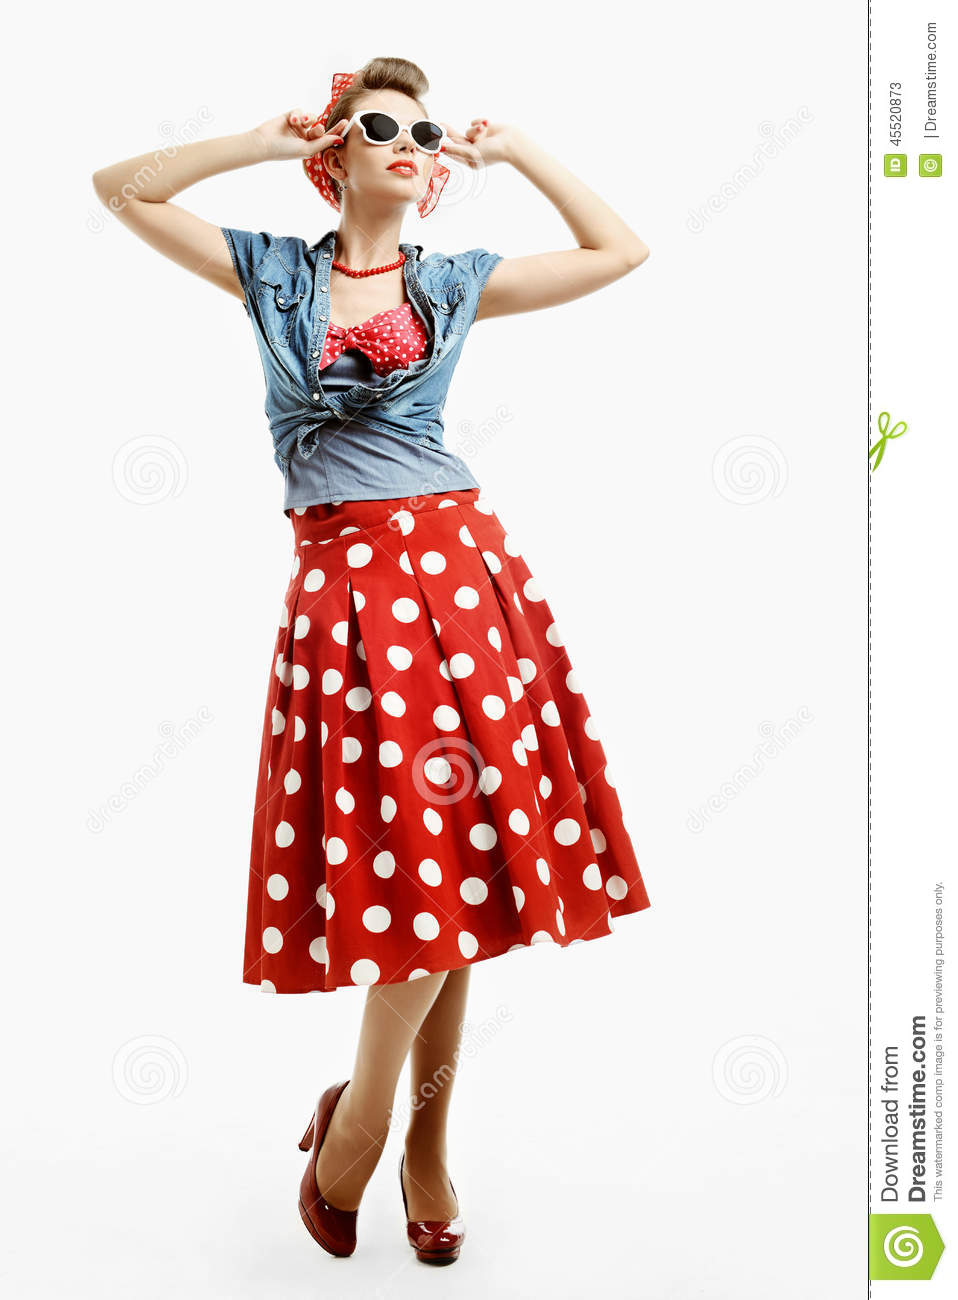 Pin Up Young Woman In Vintage American Style Trying On A